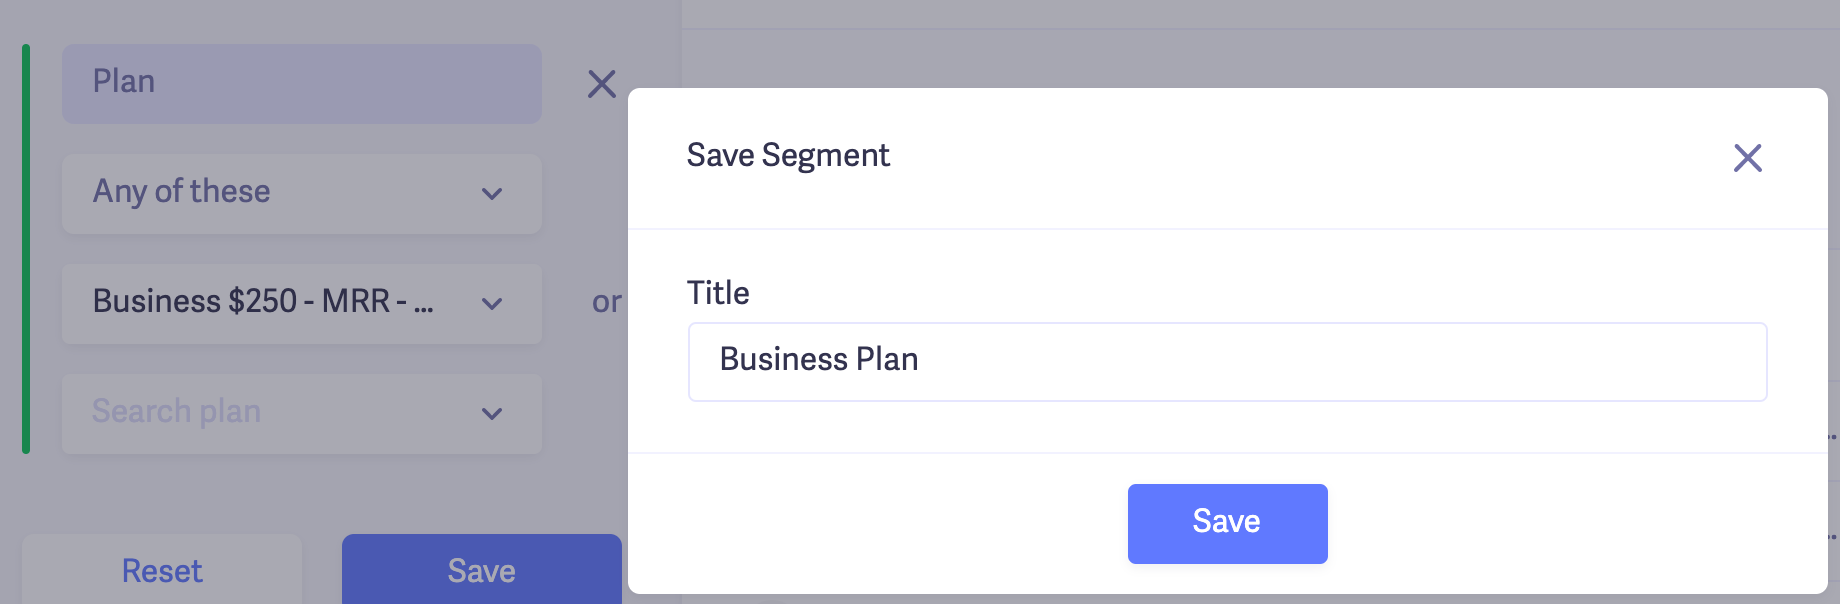 Save Segments in Baremetrics